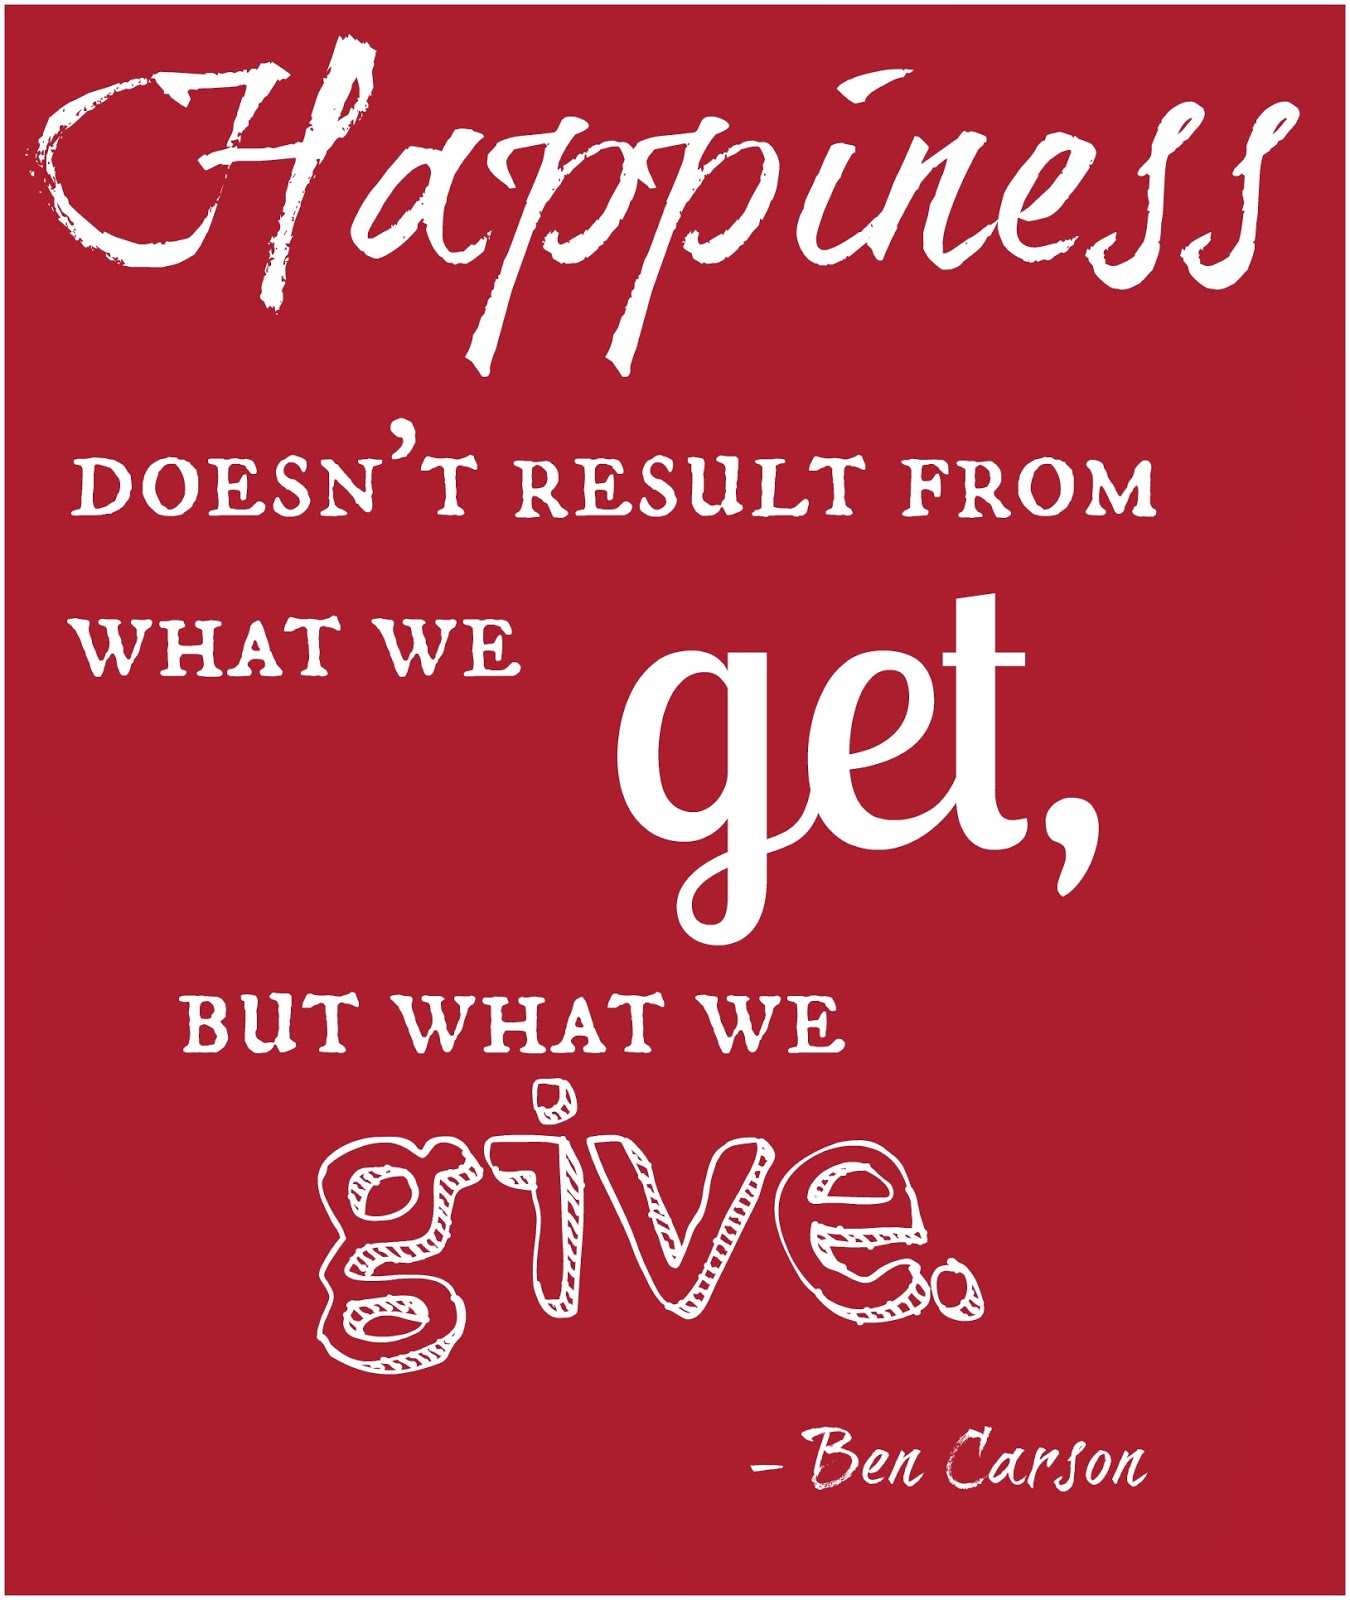 Quotes About Christmas Gifts: The Gift Of Giving Quotes. QuotesGram